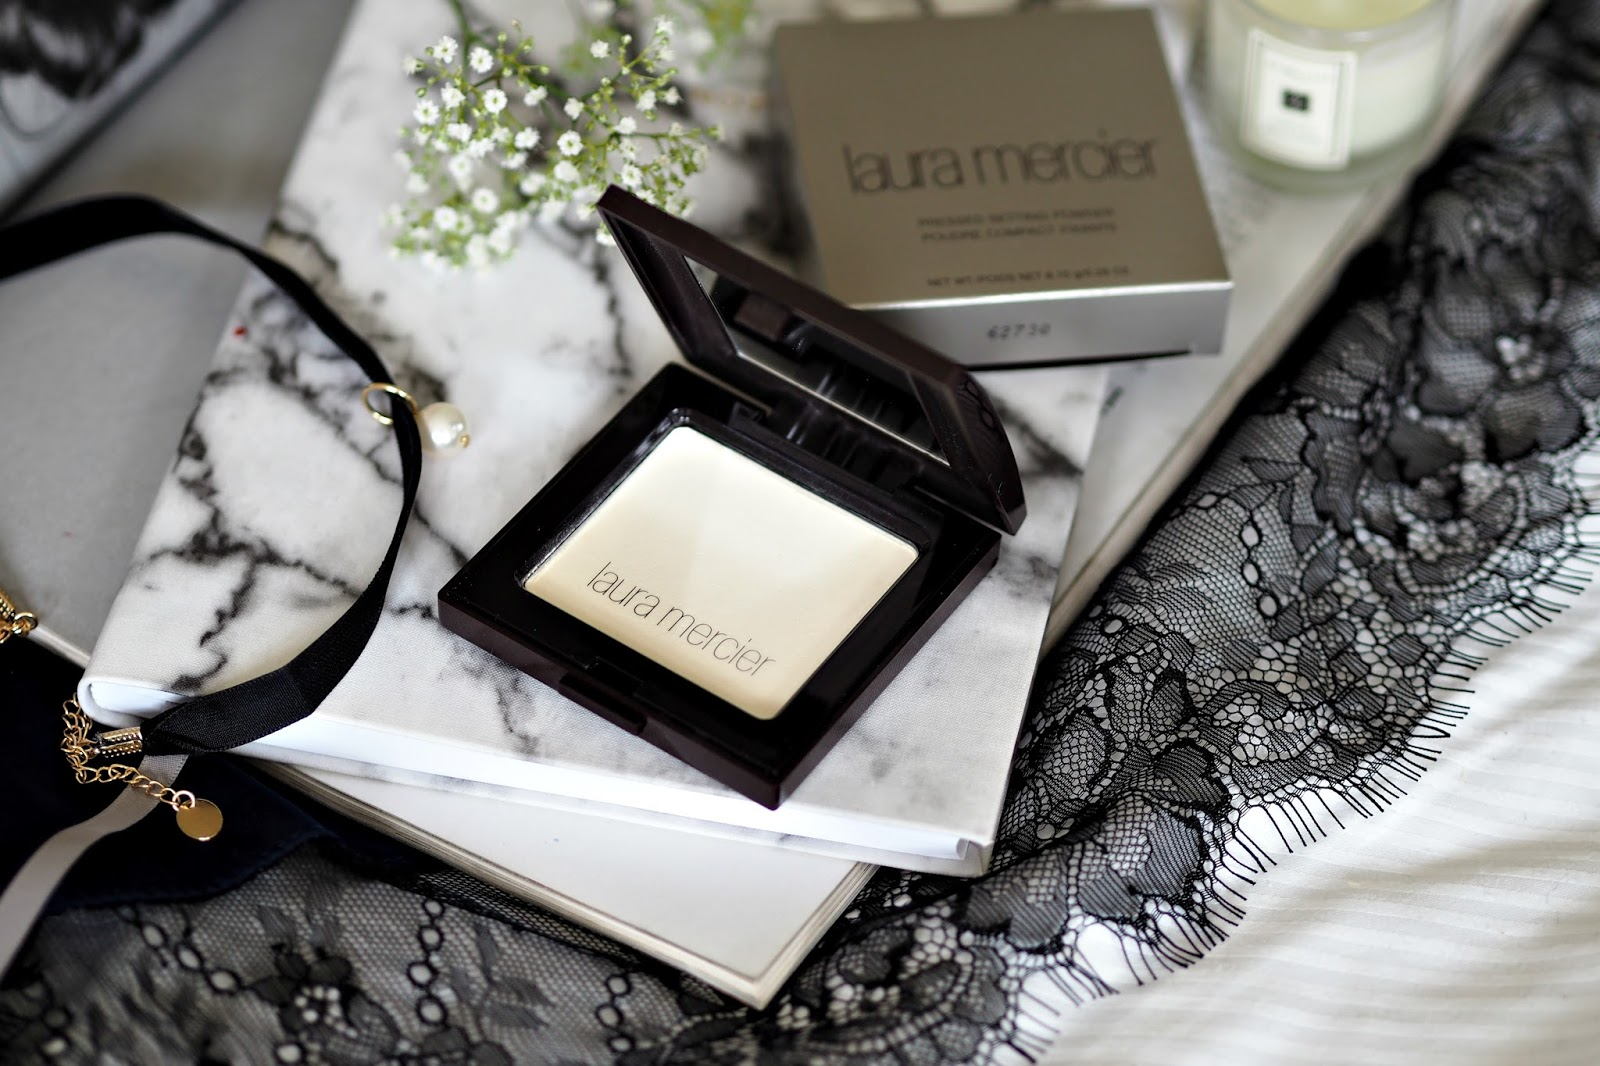 Laura Mercier Translucent Pressed Setting Powder review